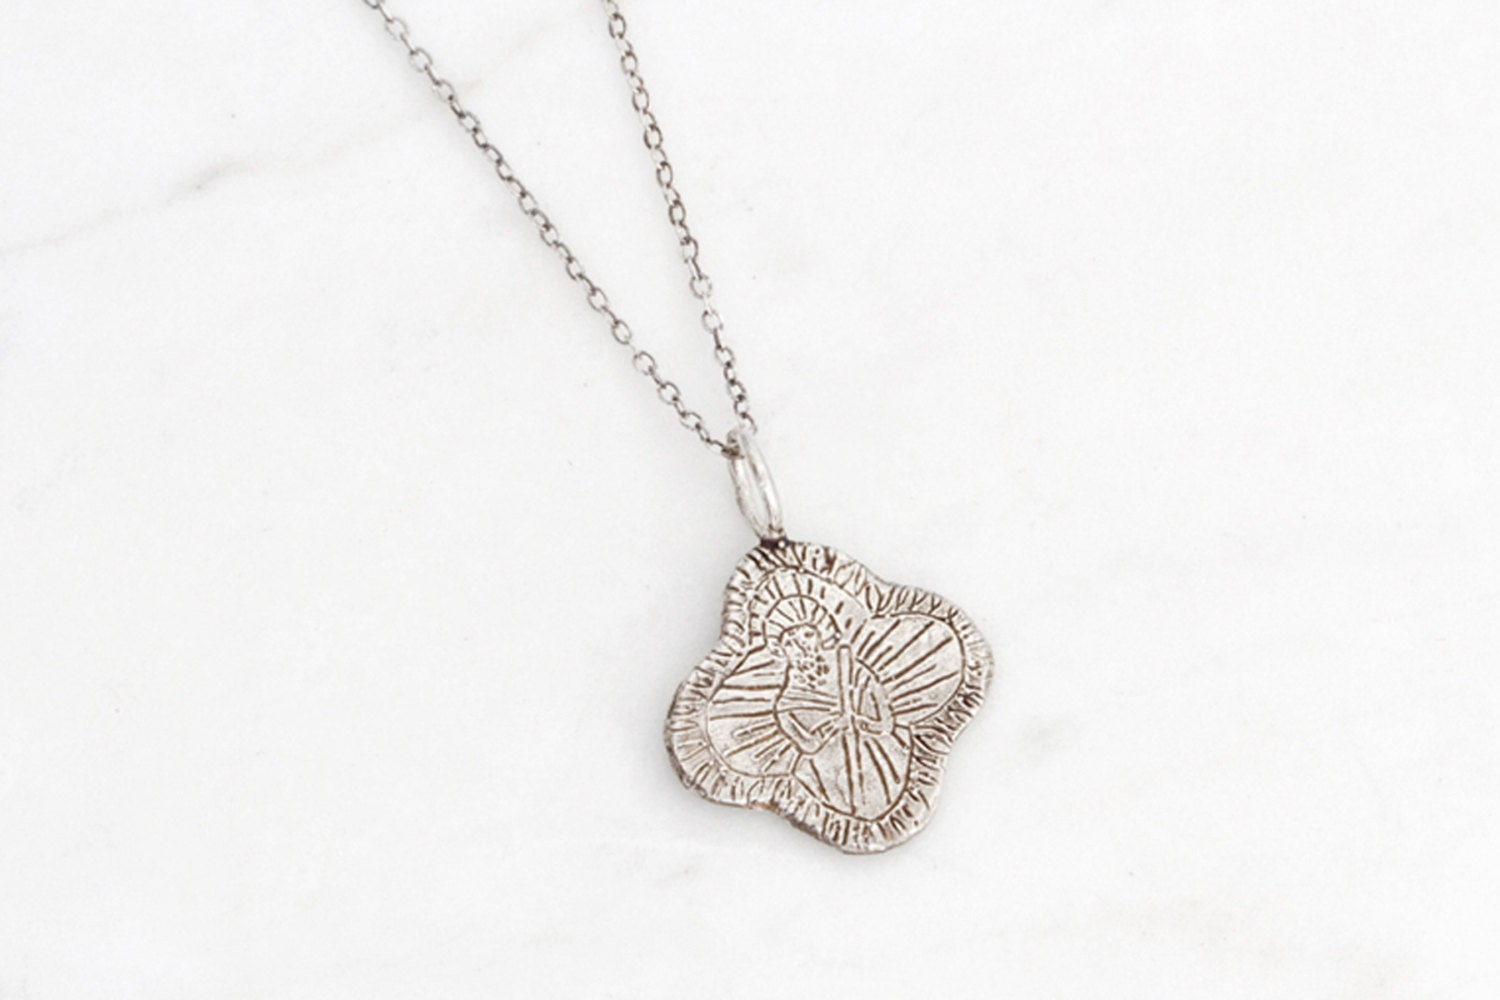 Saint jude silver medallion necklace zoom mozeypictures Gallery